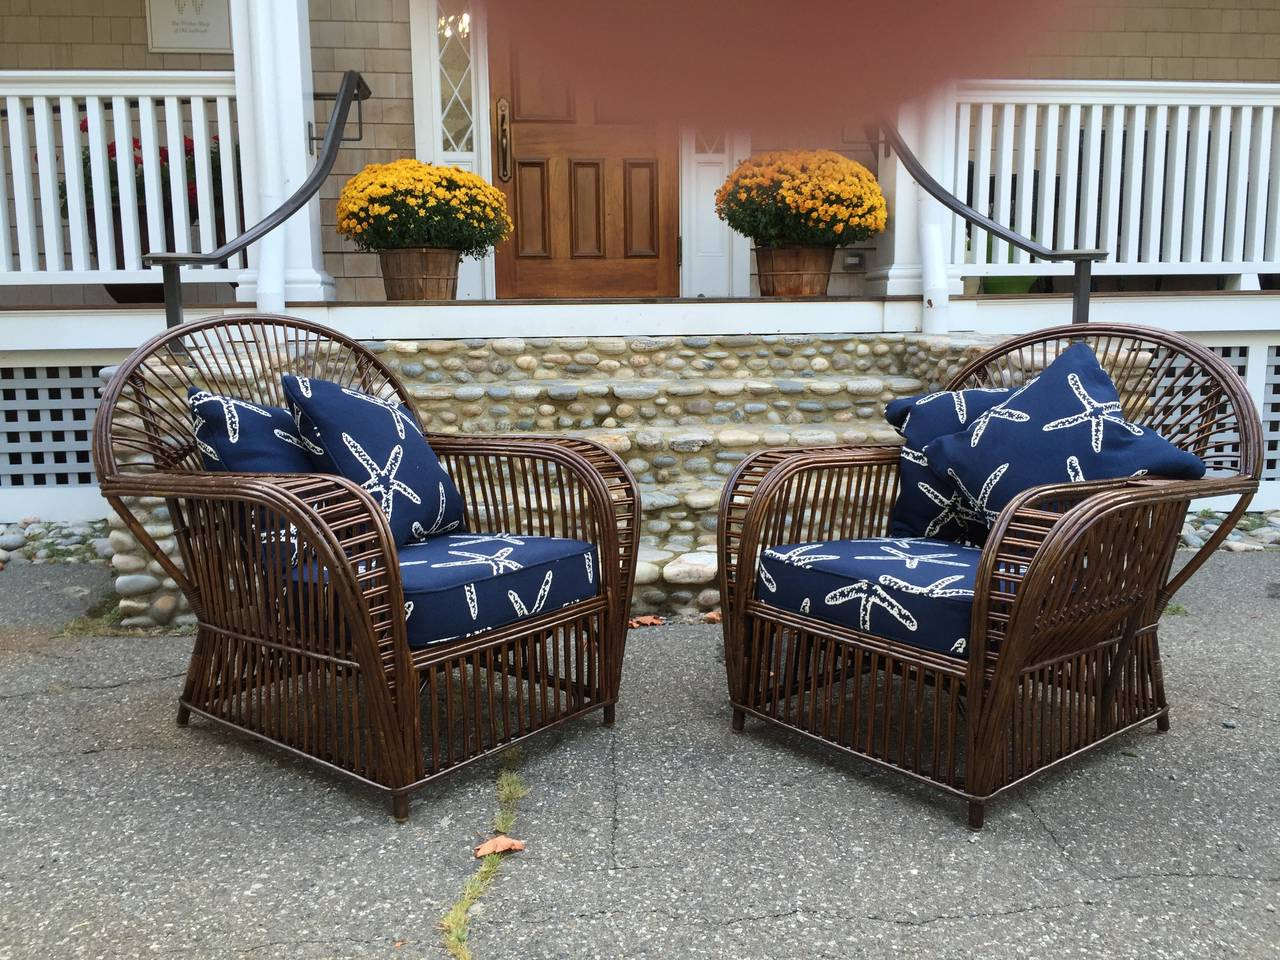 Vintage Rattan Chairs Antique Stick Wicker Lounge Chairs For Sale At 1stdibs